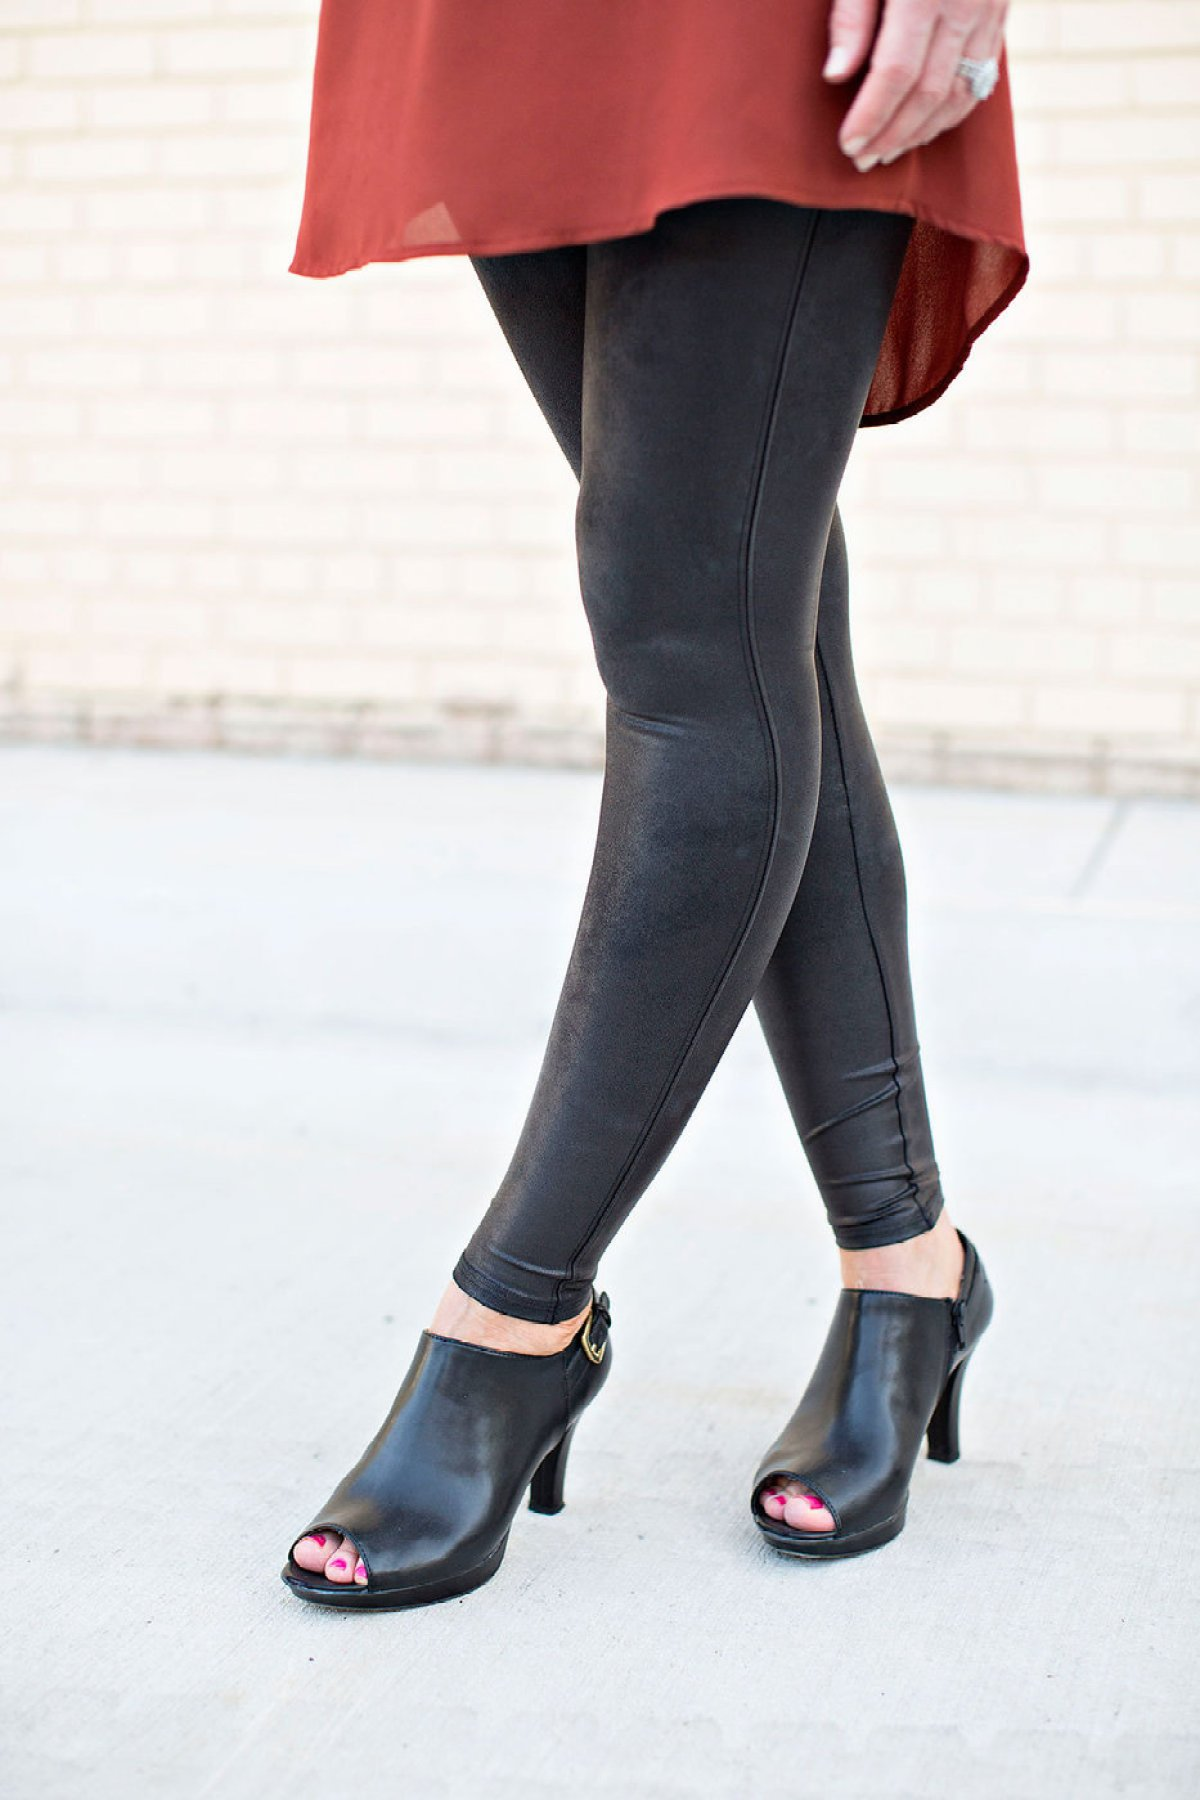 favorite finds, spanx leggings, faux leather leggings, black faux leather leggings